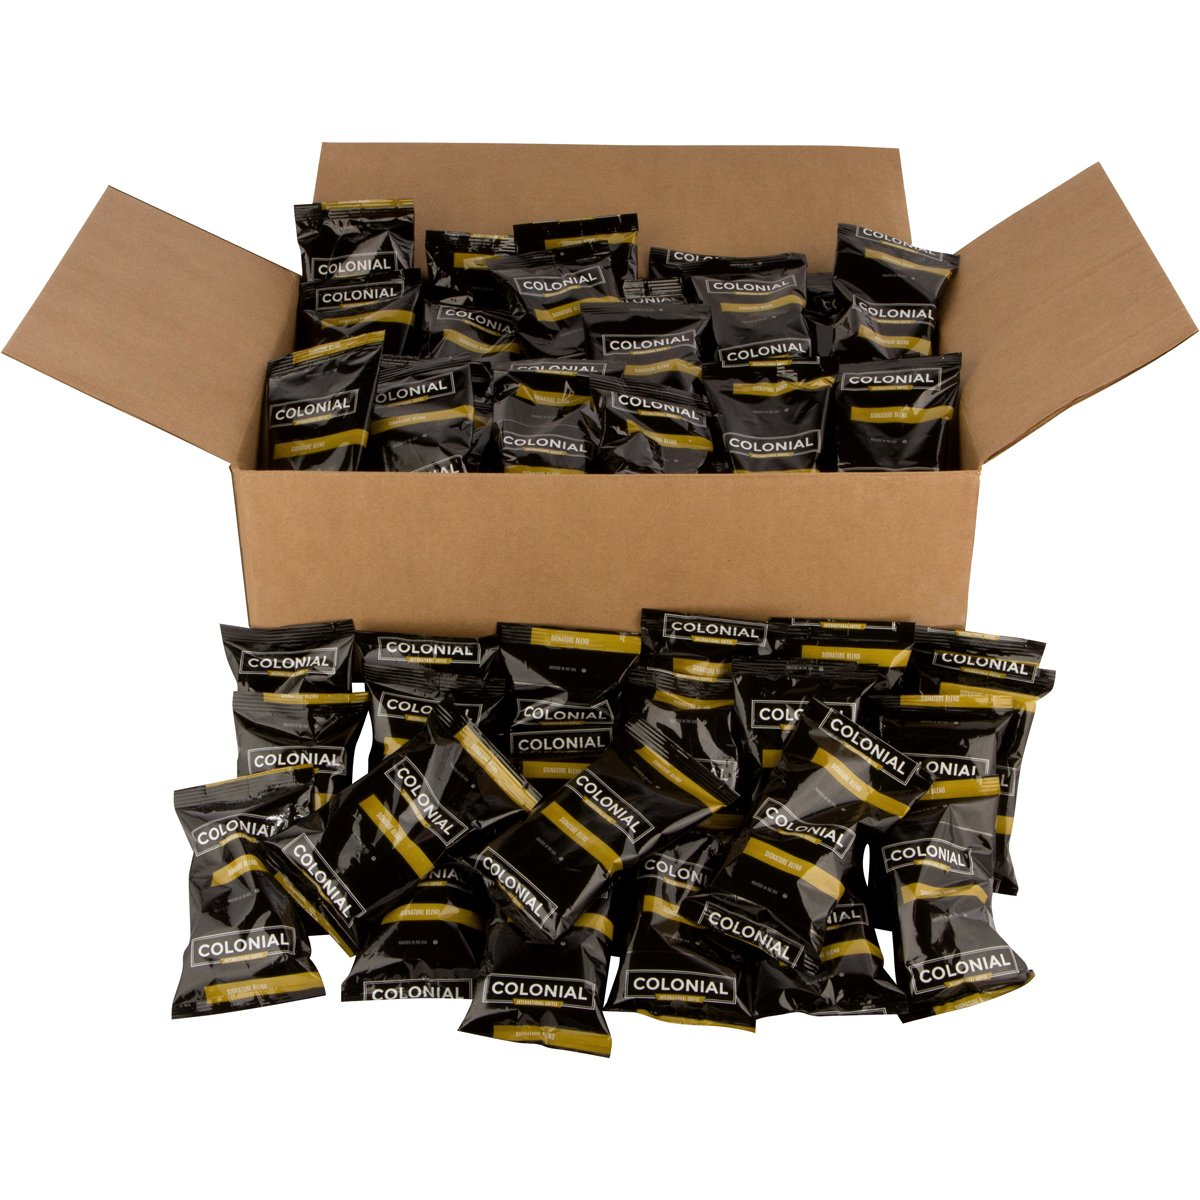 Signature 'Breakfast' Blend' Pre-Measured 2.5 OZ Ground Coffee Fraction Packs, 100 Pouches/box, Medium Roast, For Drip Coffee Makers